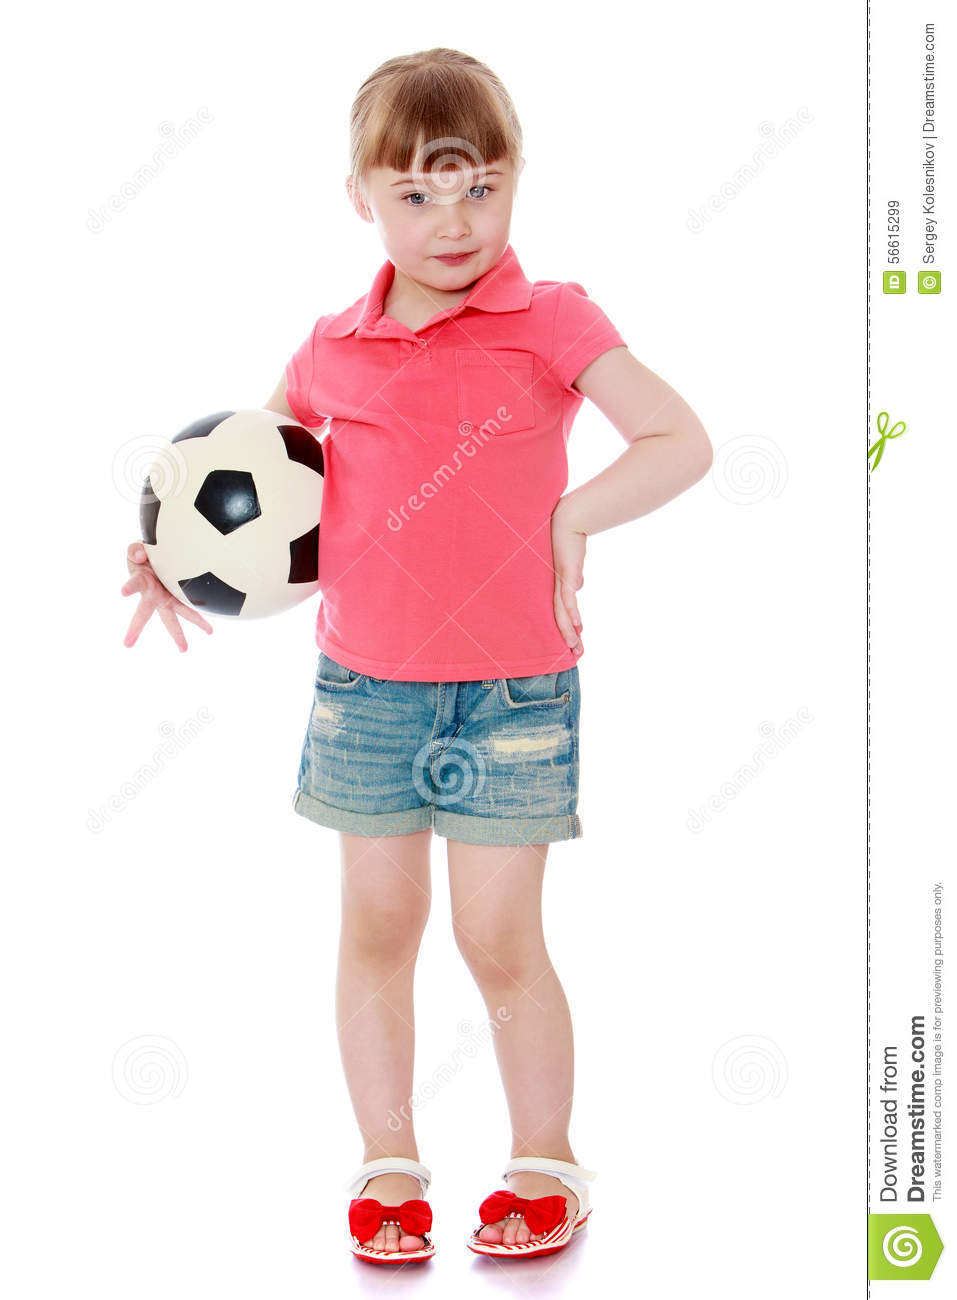 c11963bf3 Adorable little blonde girl in denim shorts and red shirt is holding under  his arm a soccer ball - isolated on white background